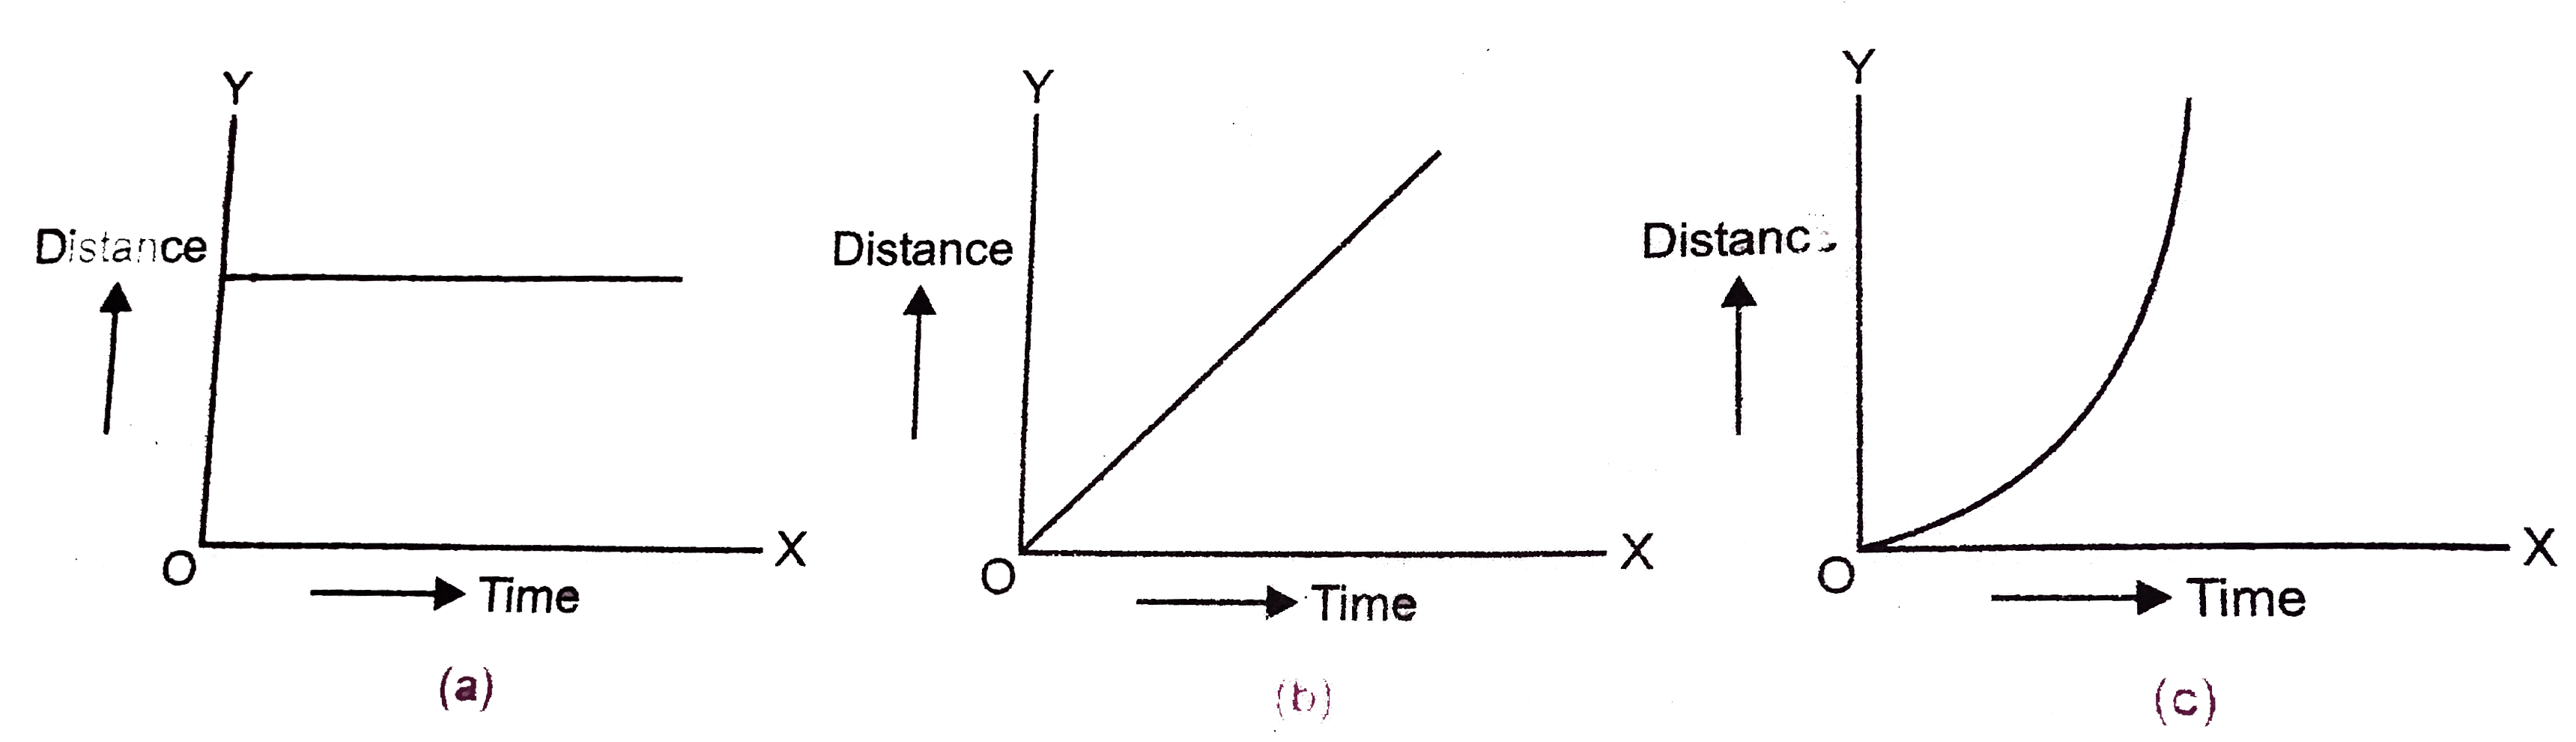 Draw distance time graph of a body (i) at rest (ii) in unifor